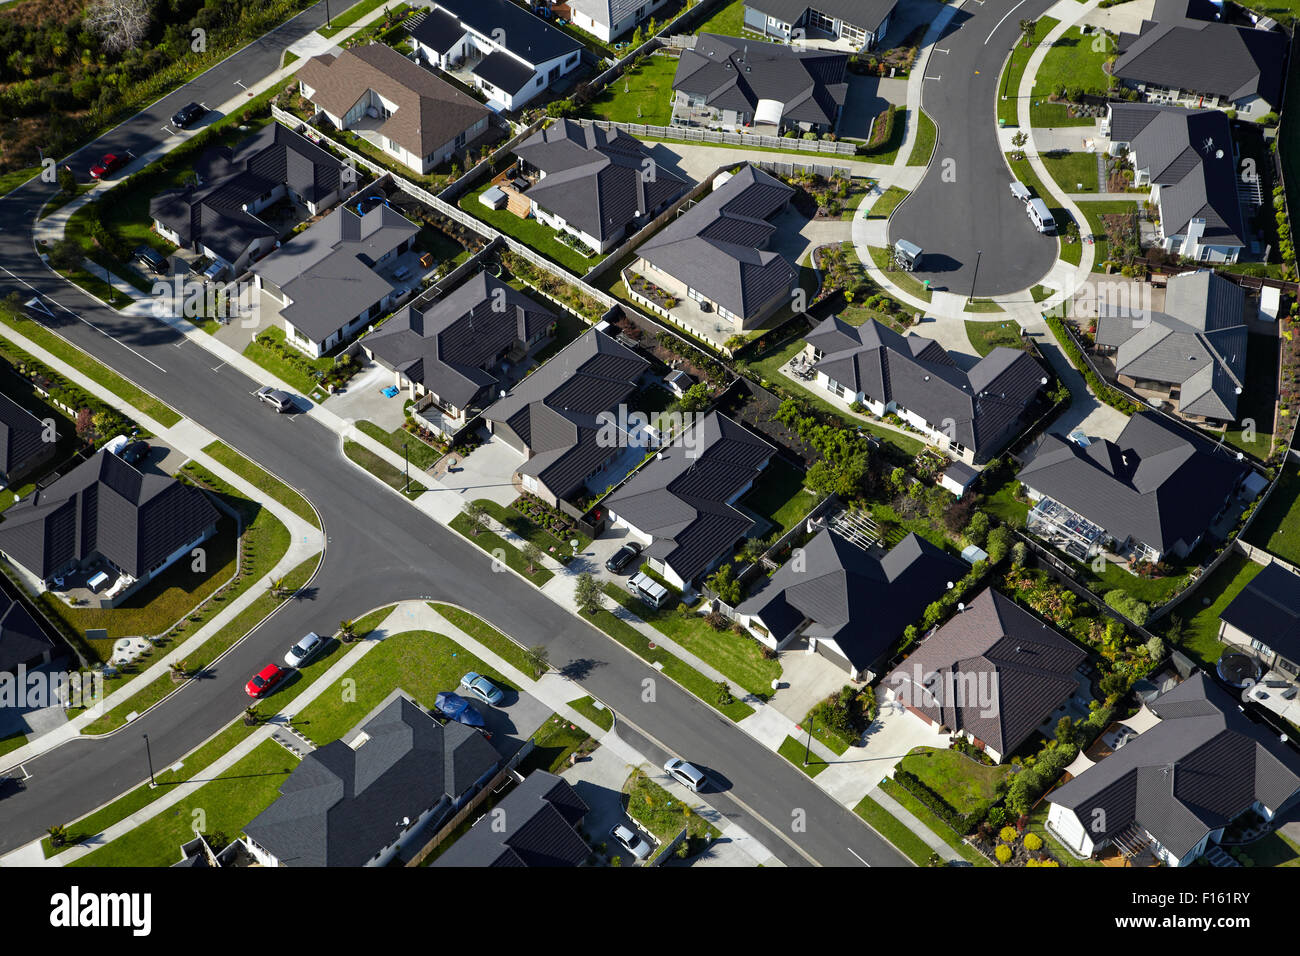 New housing development, Silverdale, North Auckland, North Island, New Zealand - aerial - Stock Image